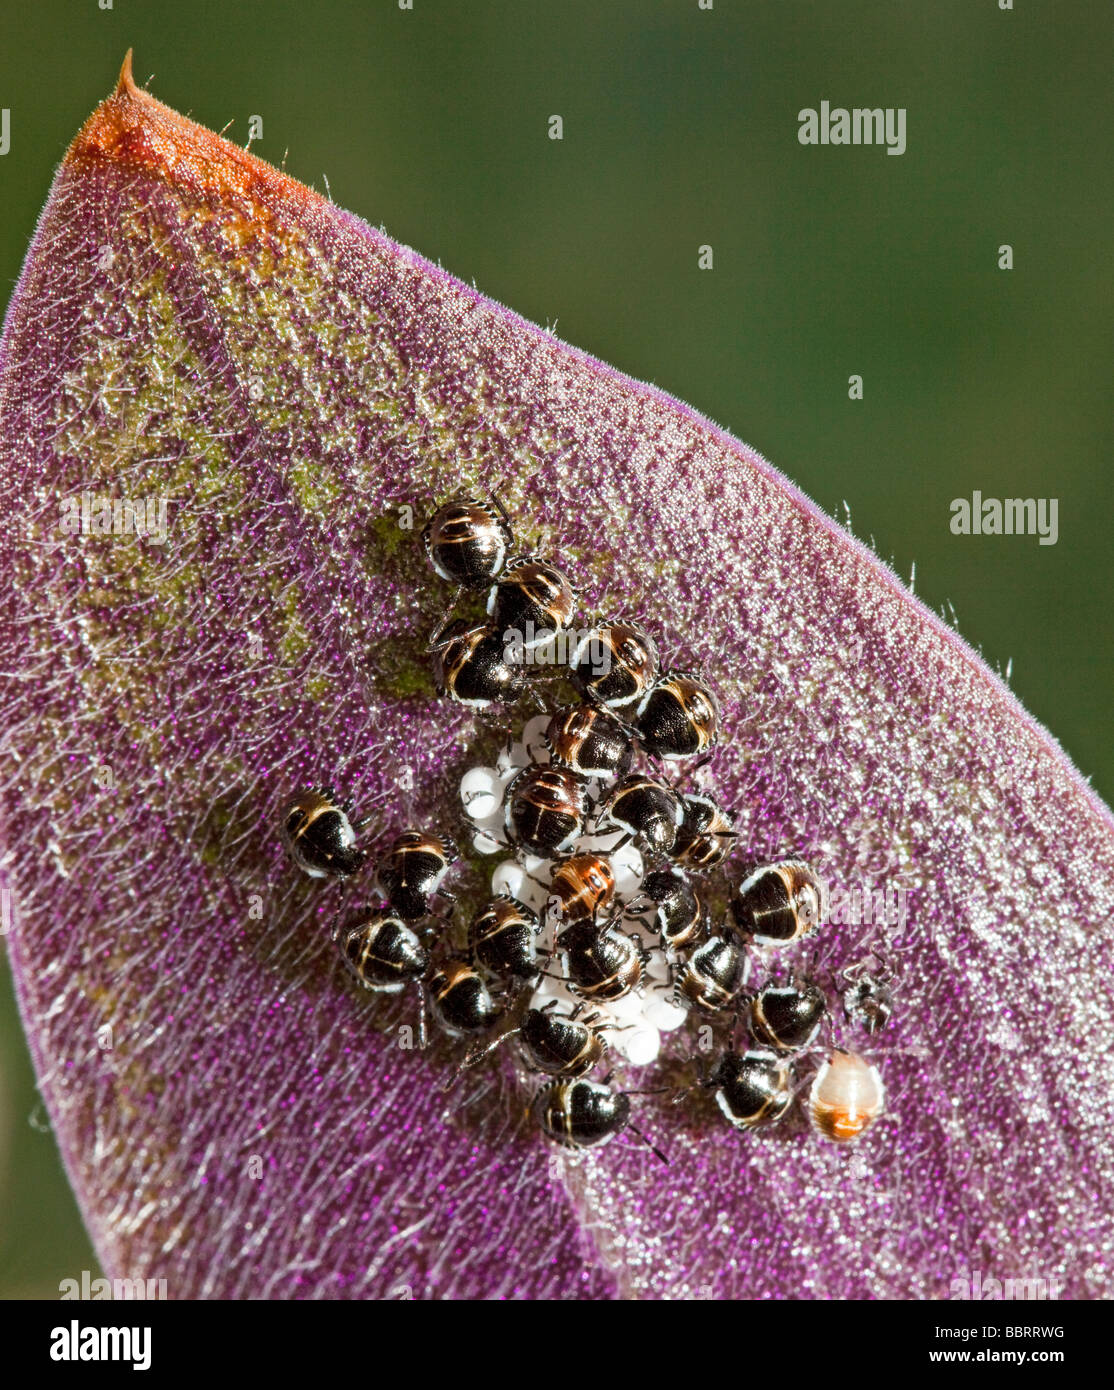 Beetles hatching from eggs on undersurface of house plant leaf - Stock Image